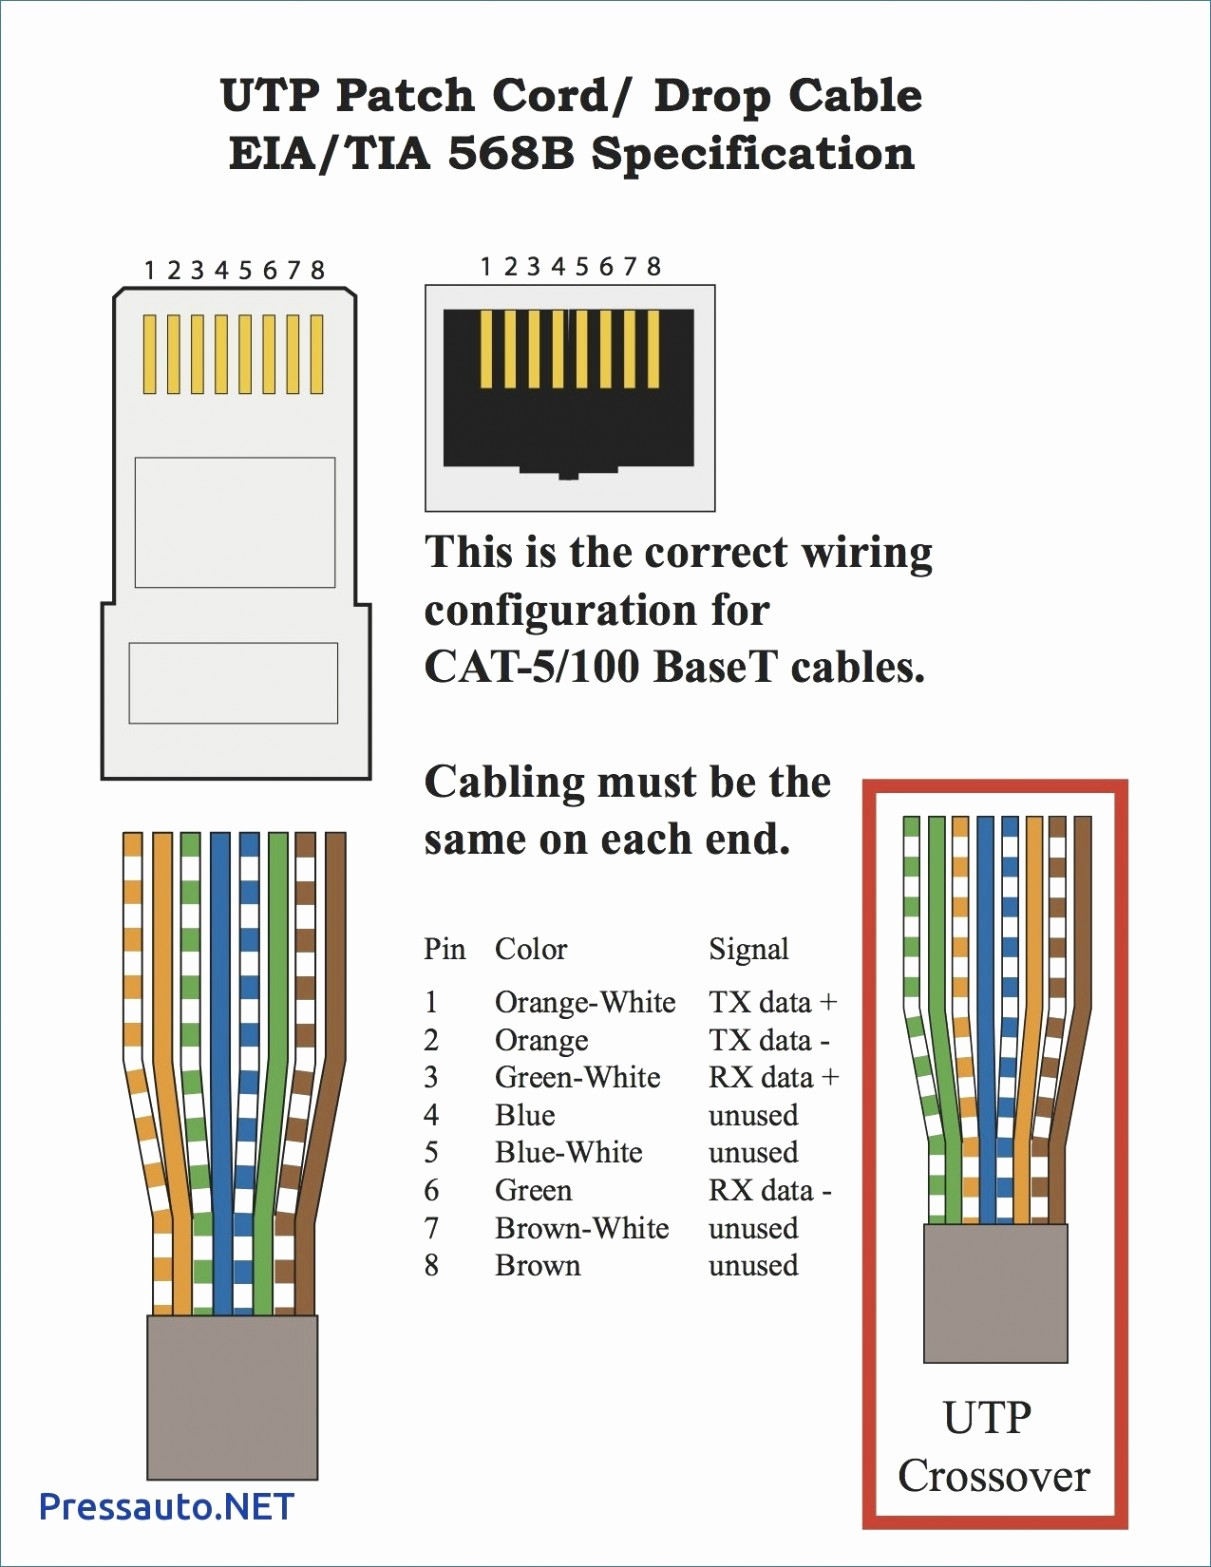 Usb To Cat 5 Wiring Diagram B | Wiring Diagram - Usb To Cat 5 Wiring Diagram